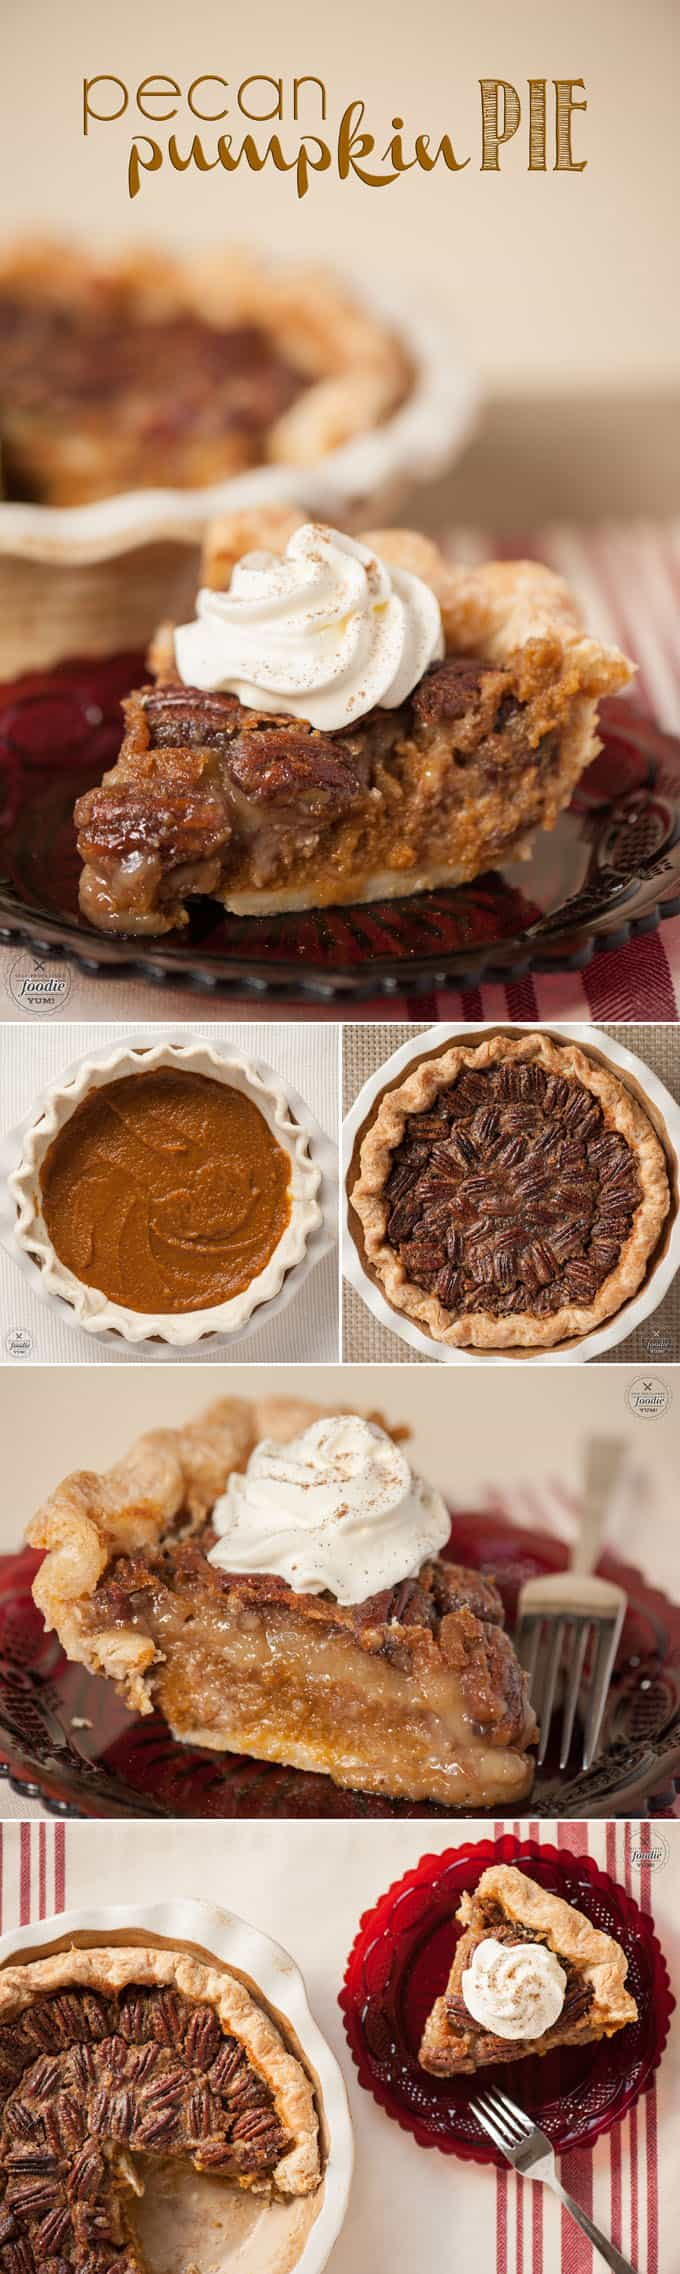 Pecan Pumpkin Pie combines the best of both worlds into one decadent and perfectly sweet holiday pie that is perfect for Thanksgiving Dinner.